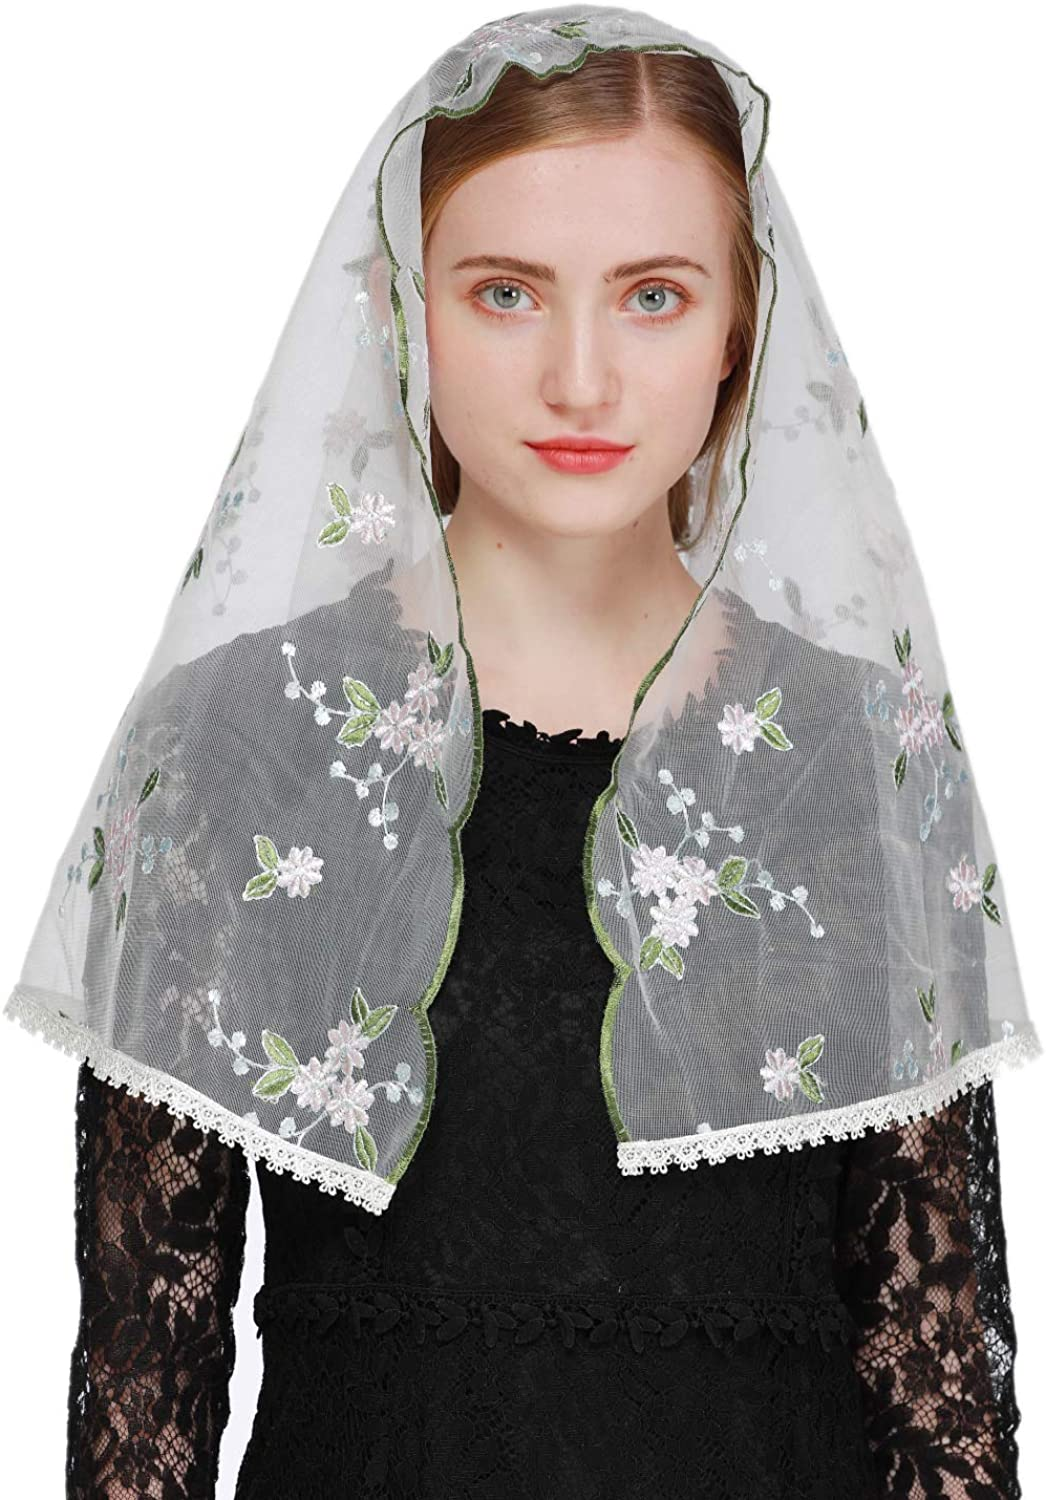 Pamor Vintage Inspired Floral Lace Chapel Veil D Shape Mantilla Veils Latin Scarf for Mass